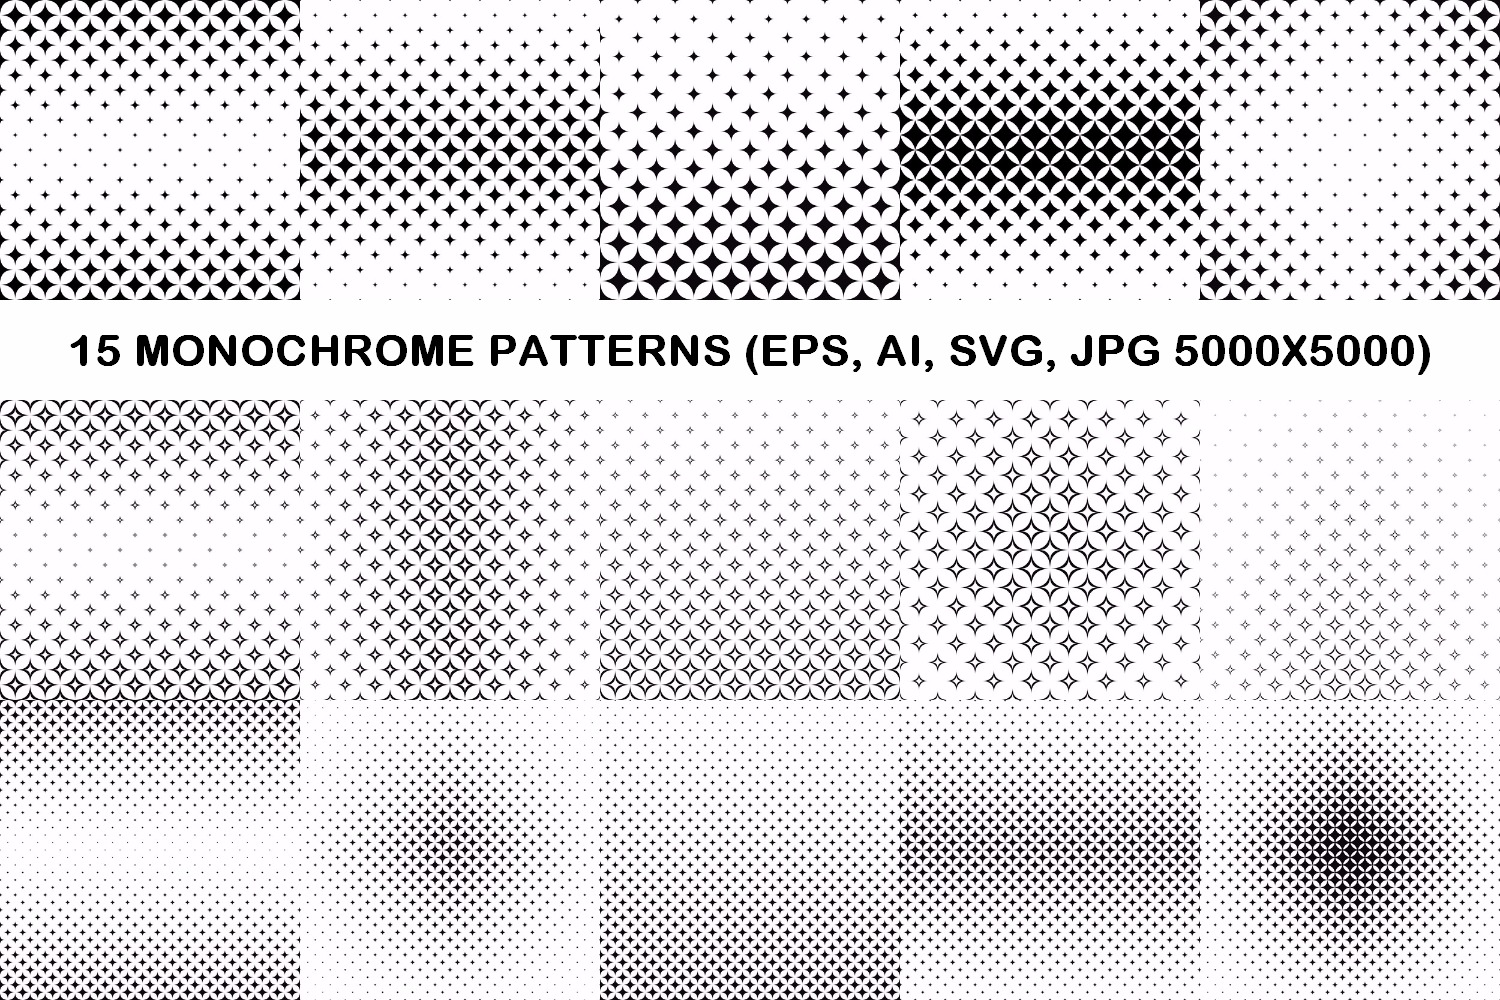 15 curved star patterns (EPS, AI, SVG, JPG 5000x5000) example image 1